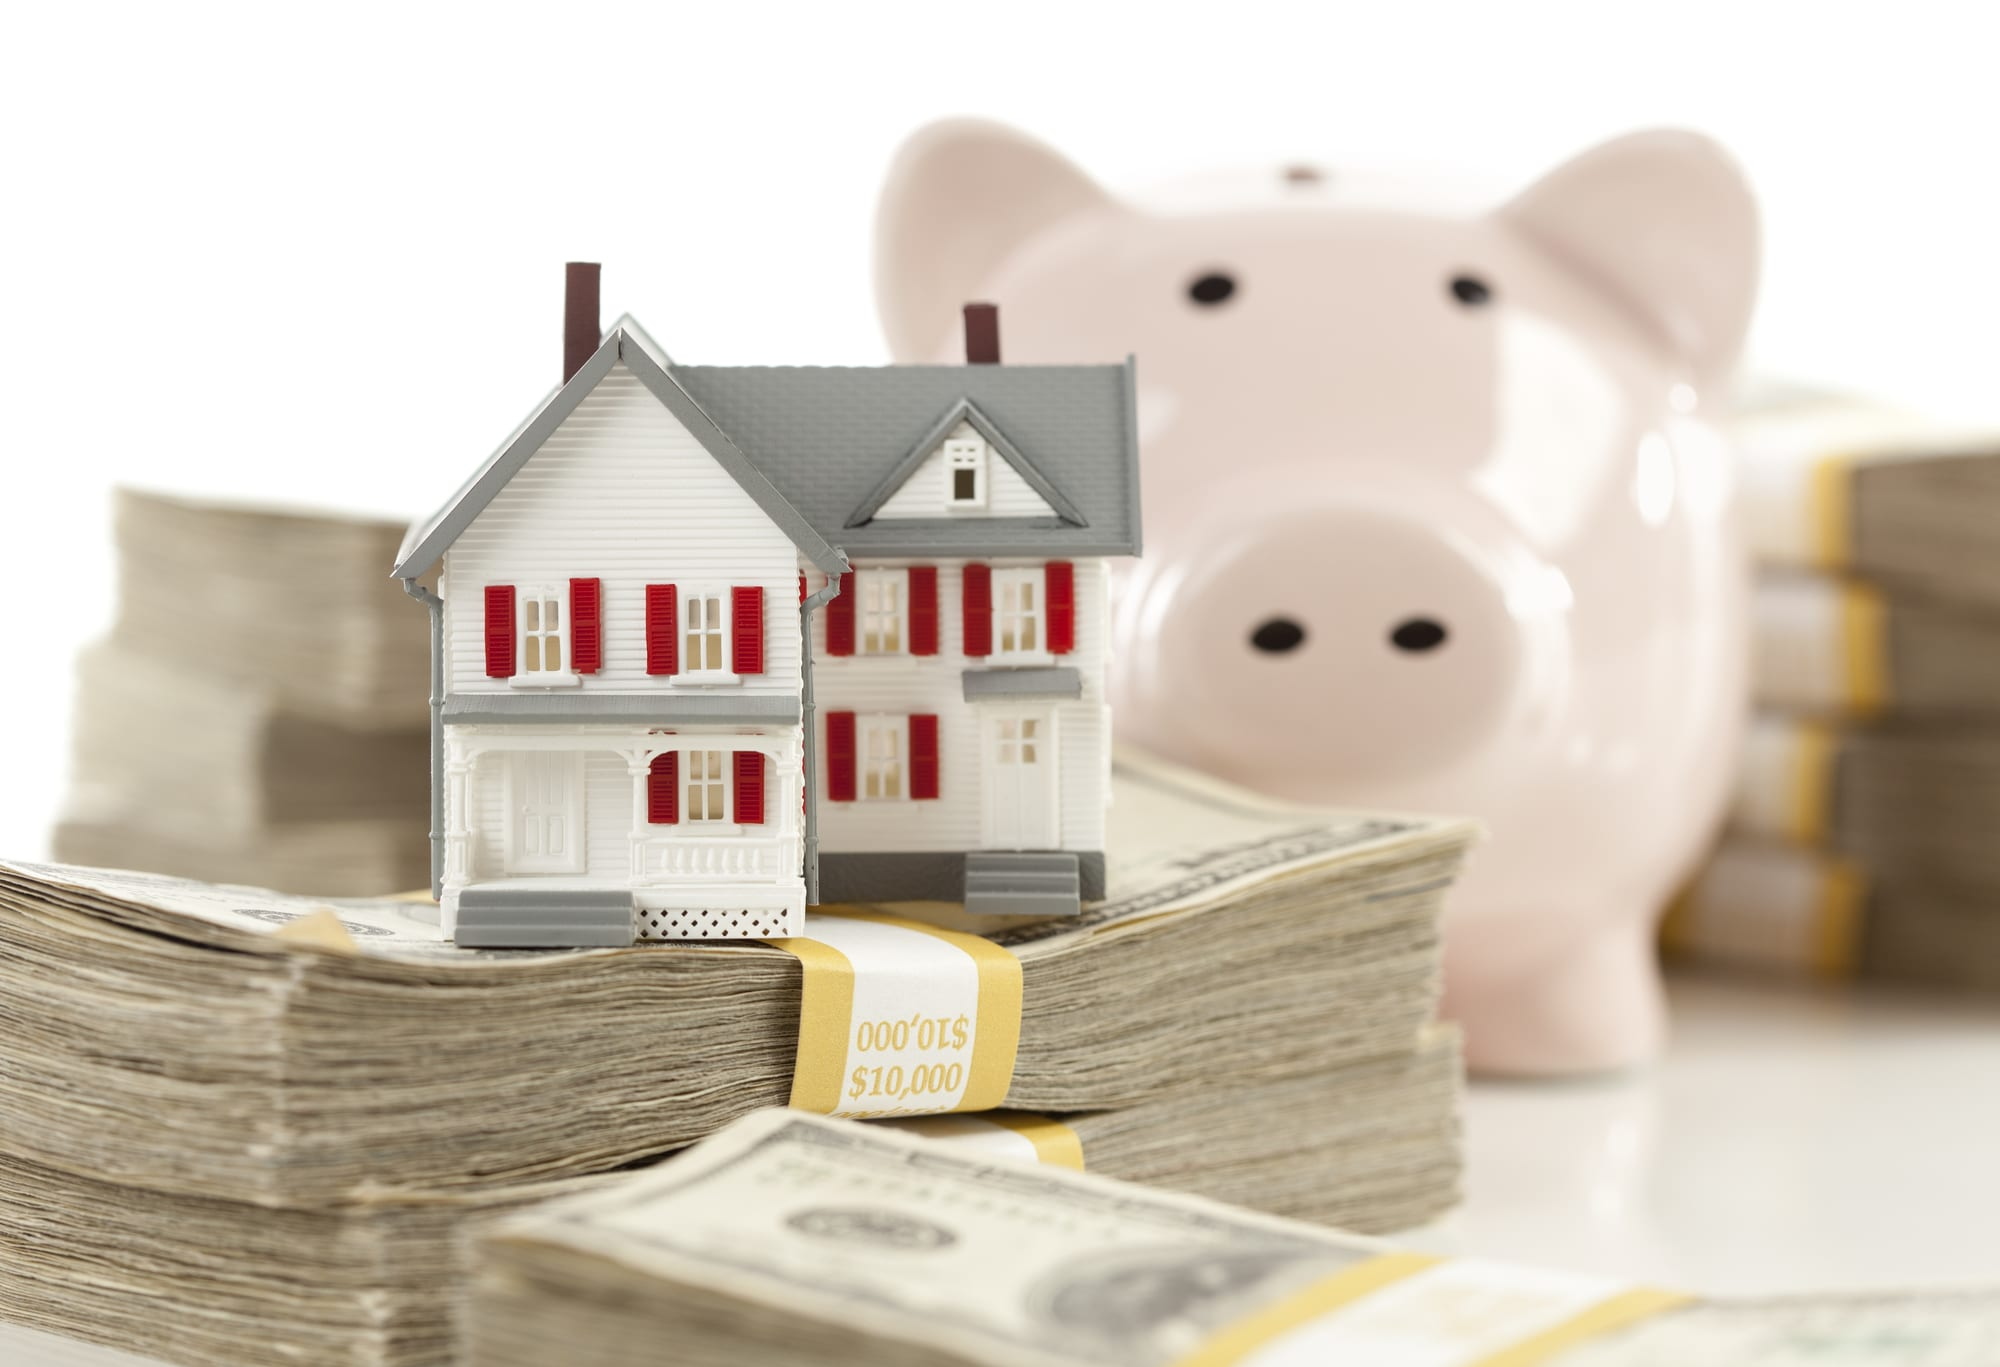 small model of house on stacks of cash, piggy bank behind